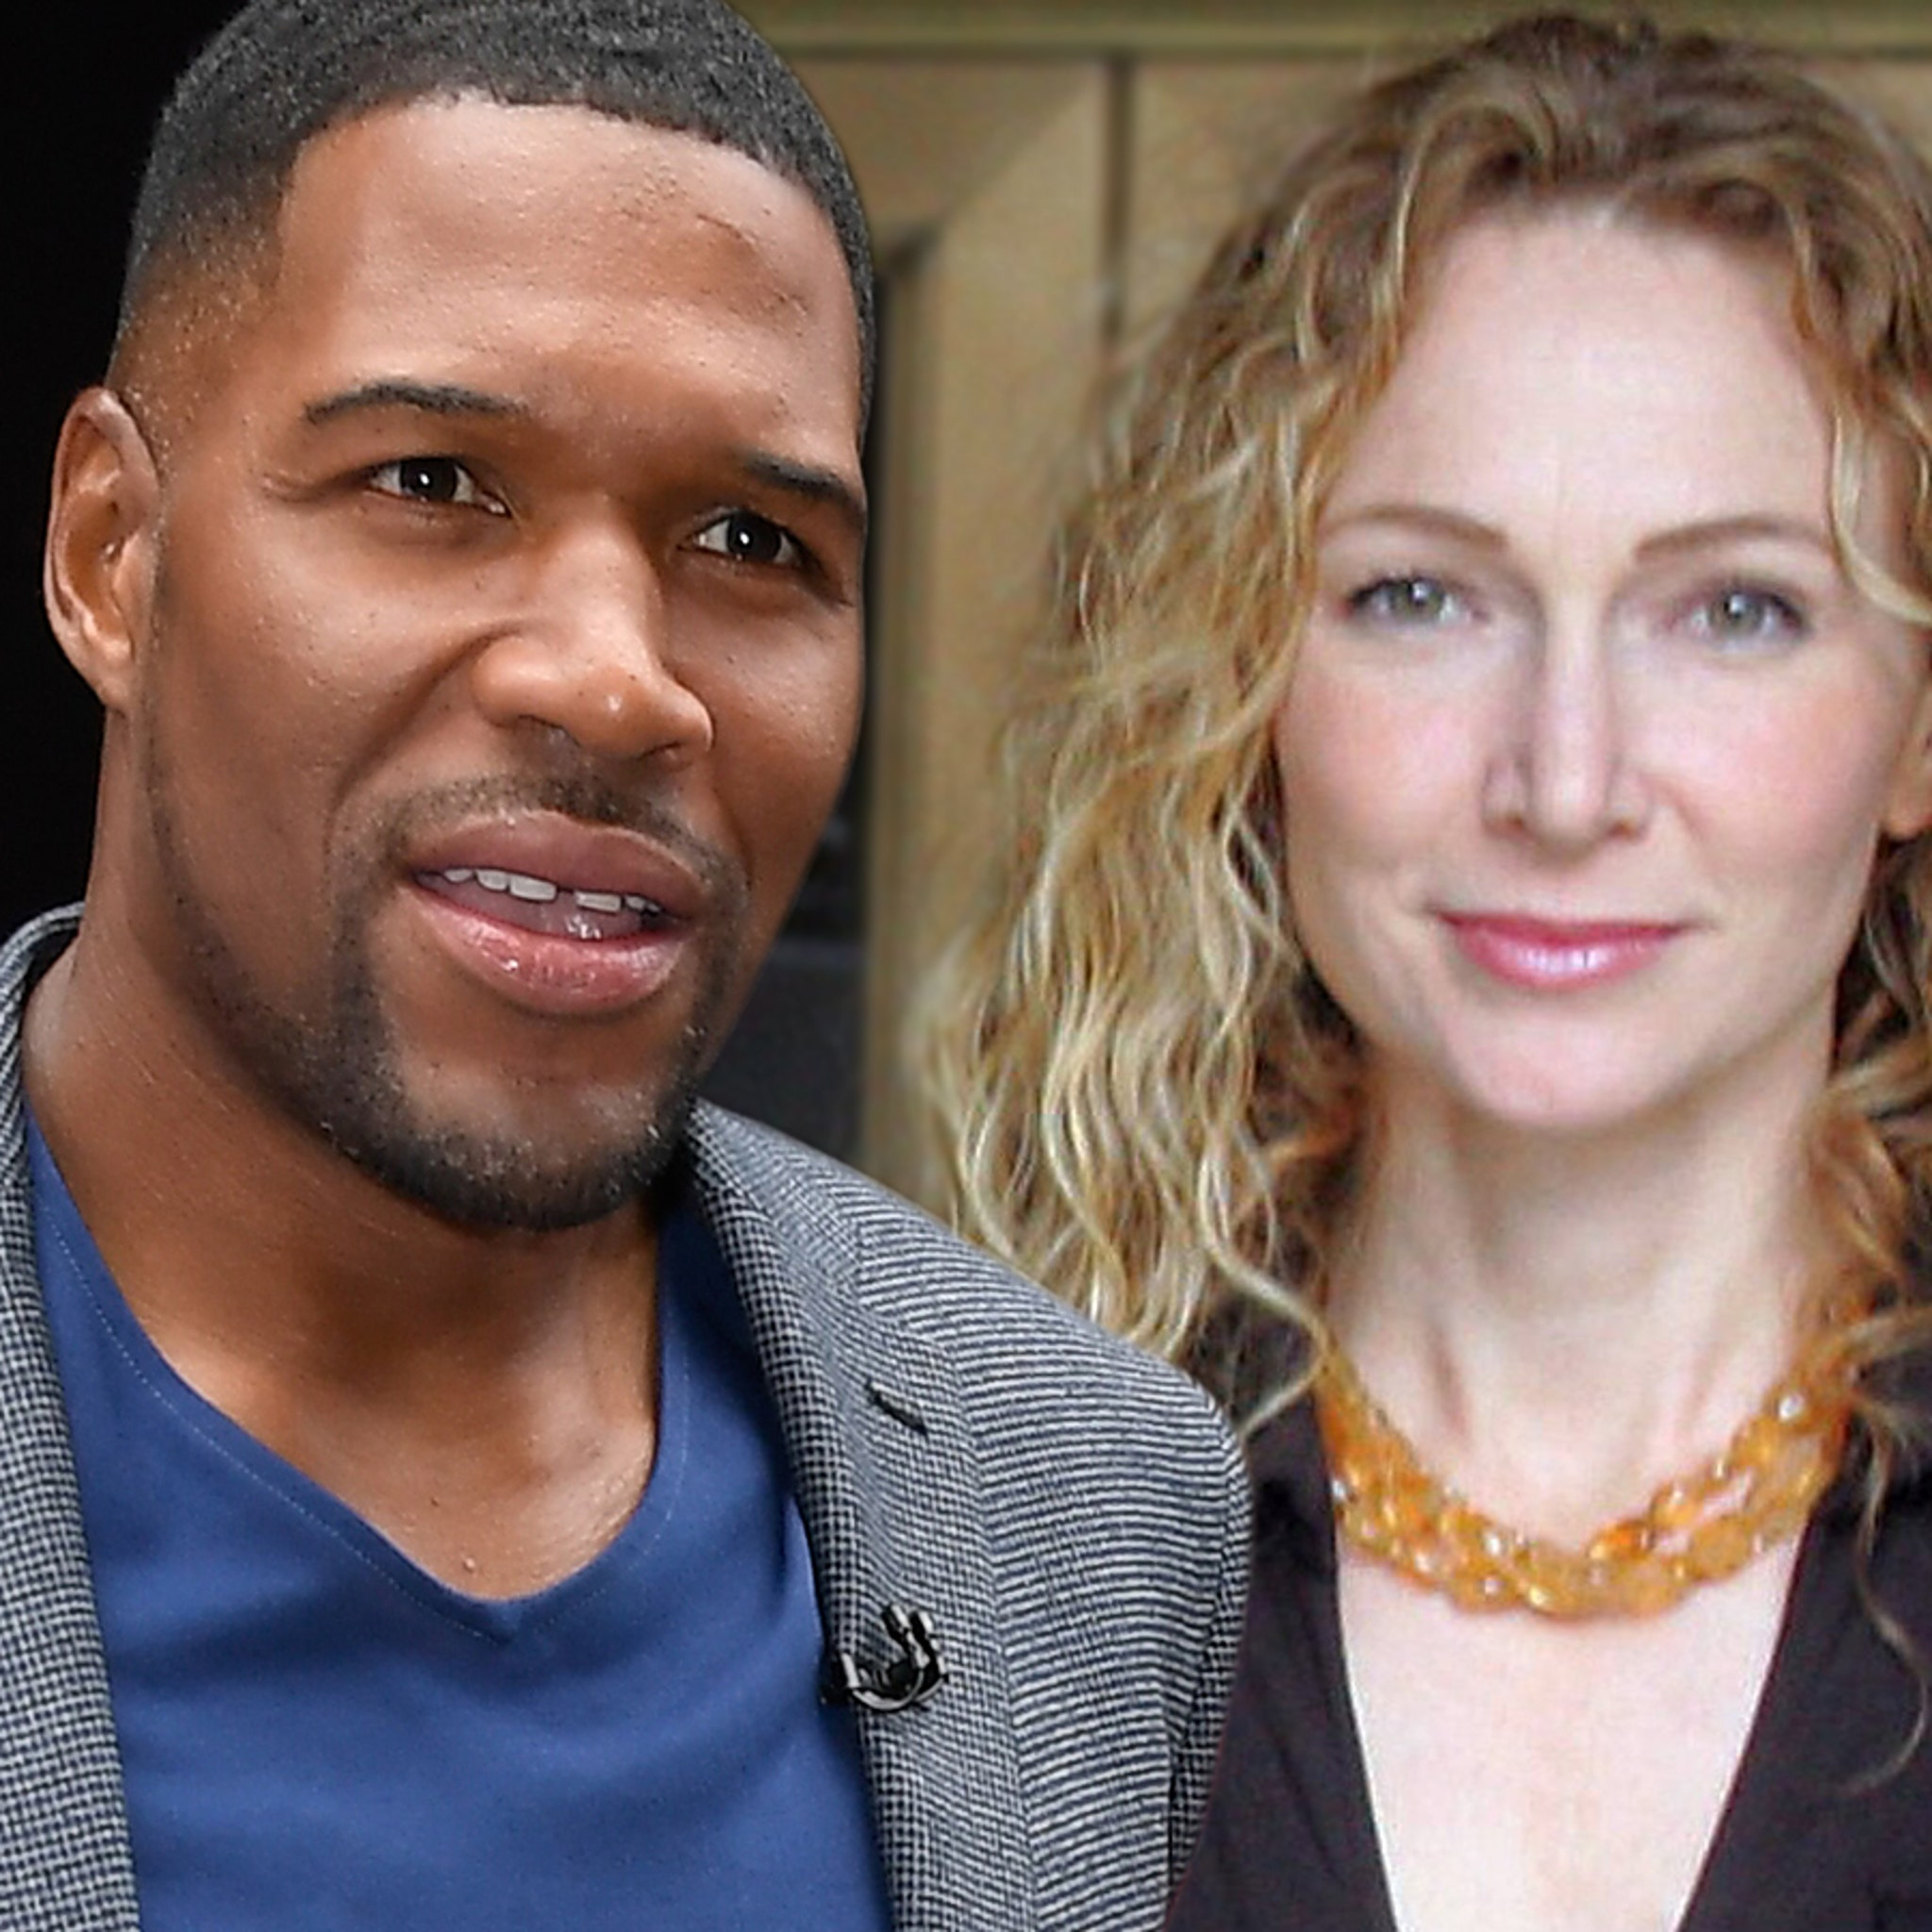 Image result for images of strahan and ex wife